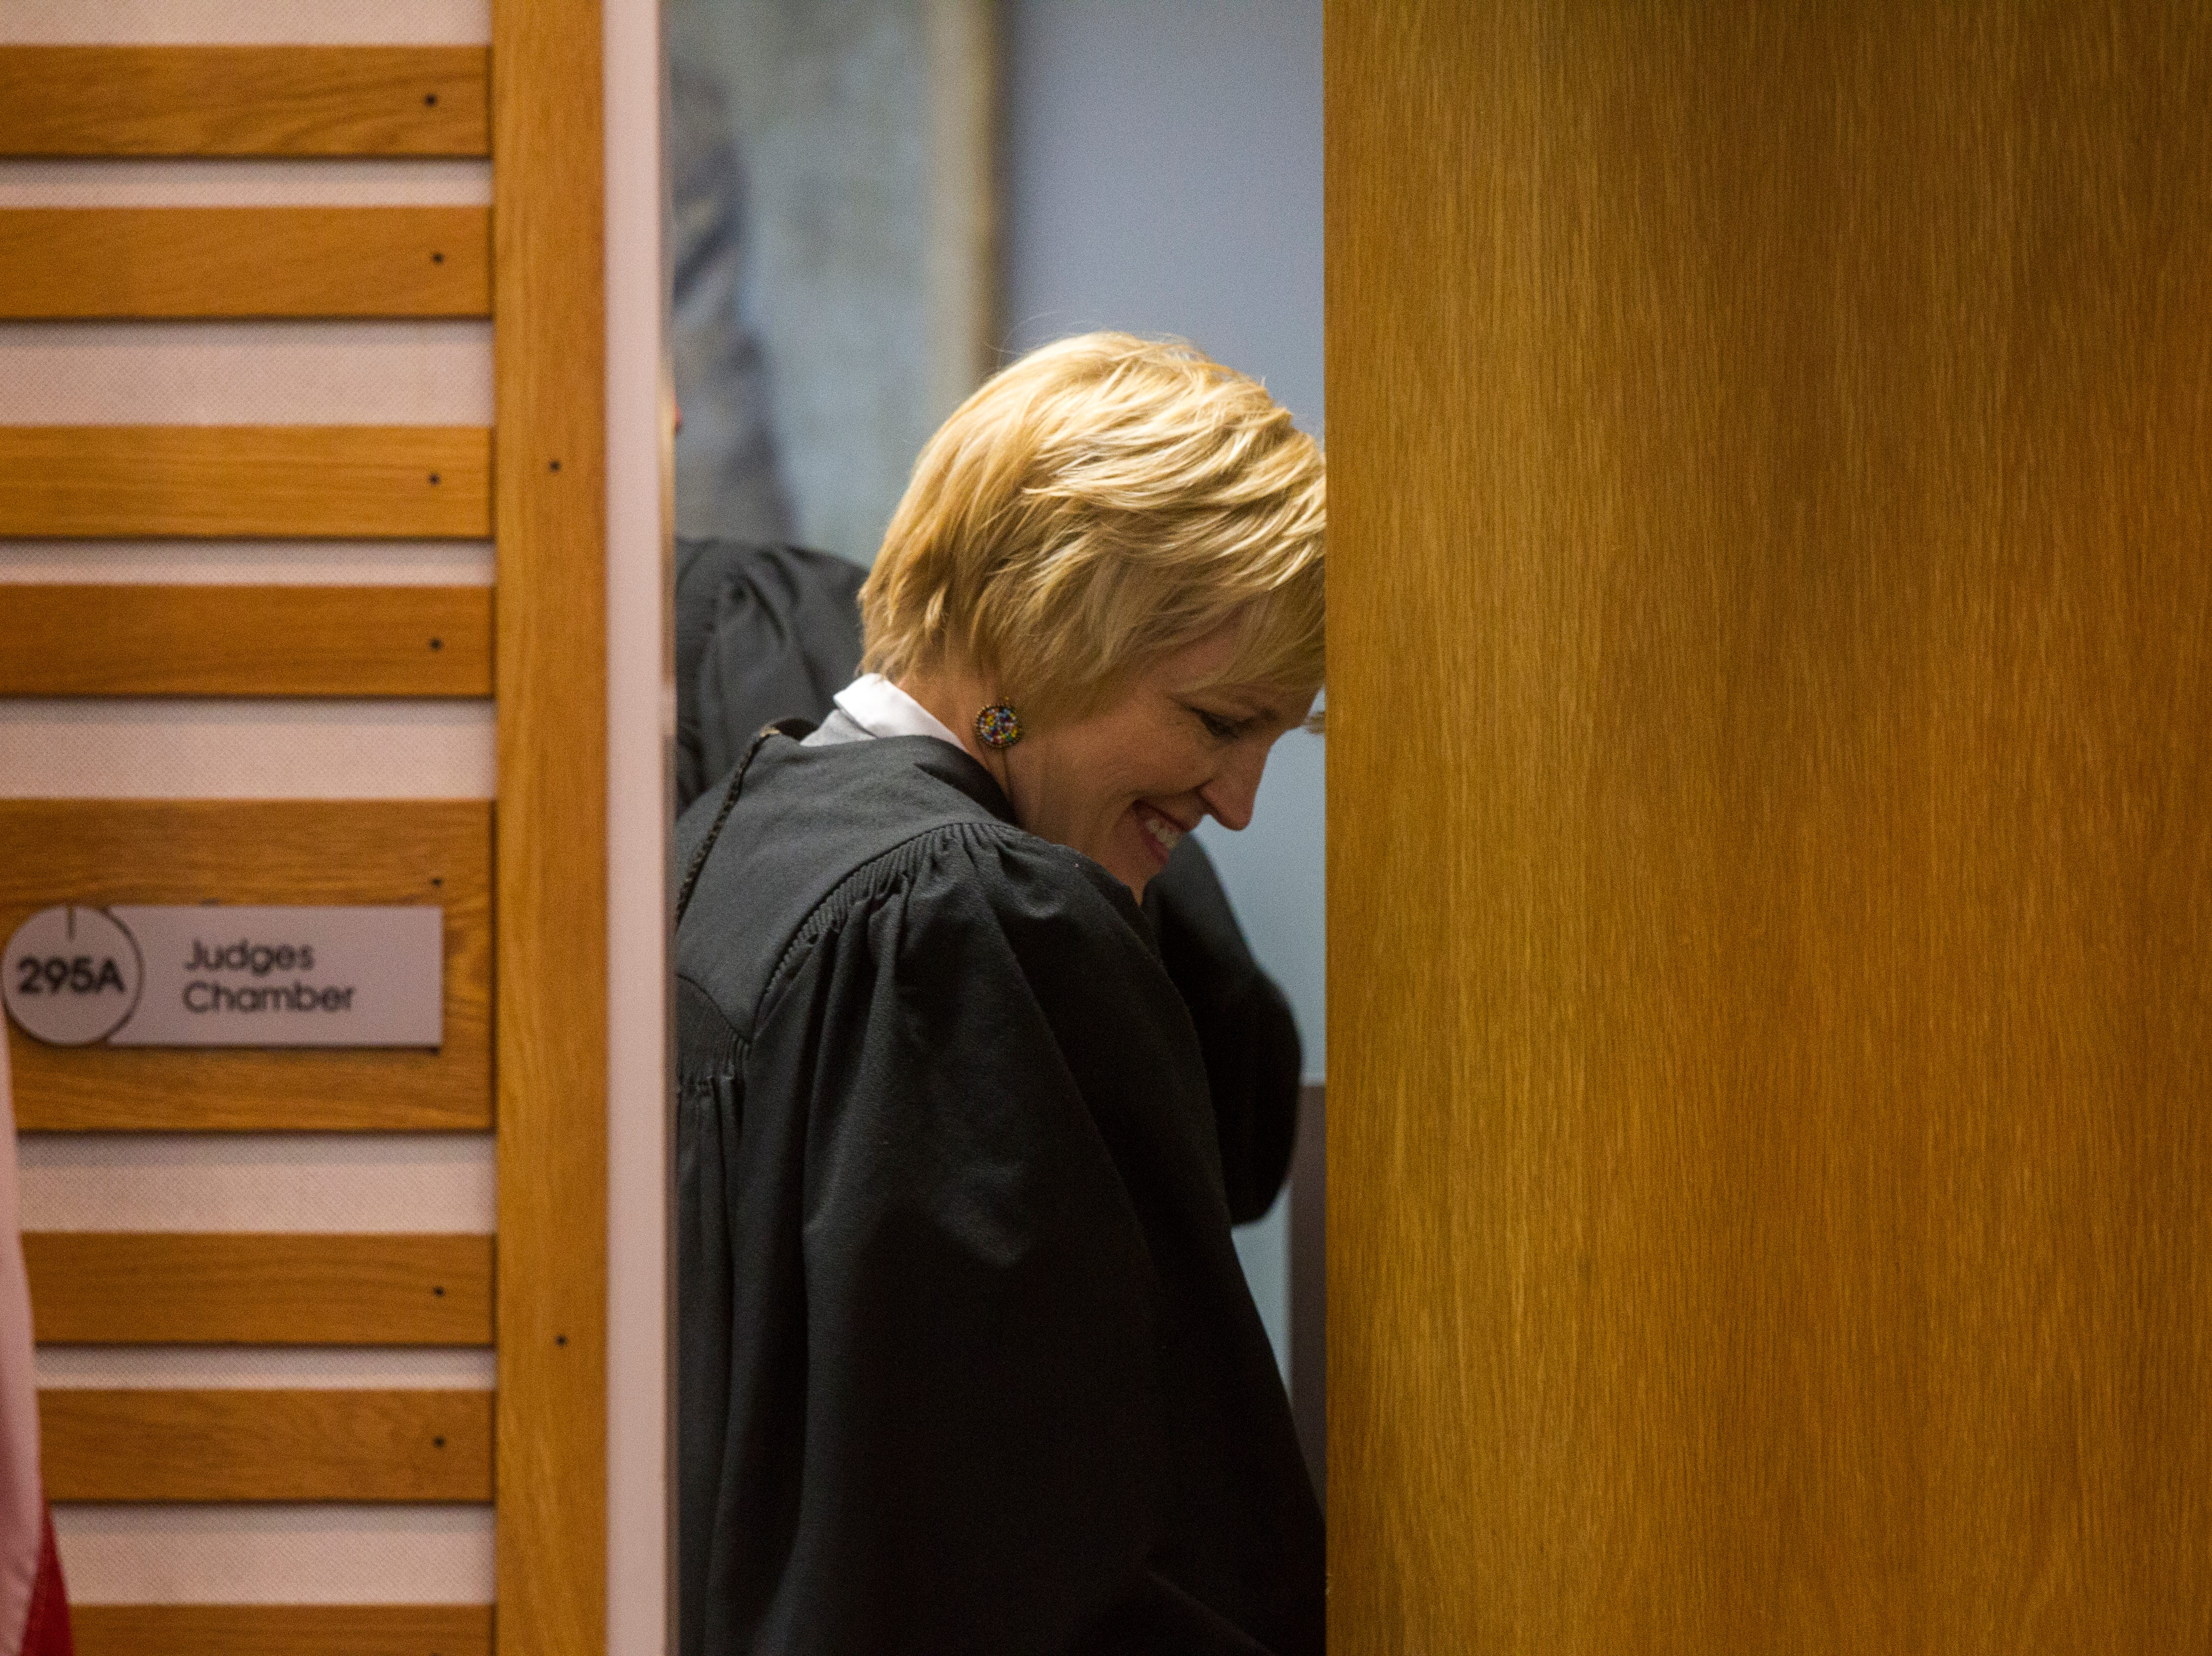 Justice Susan Christensen of the Iowa Supreme Court smiles after hearing oral arguments on Friday, Sept. 7, 2018, at Levitt Auditorium inside the Boyd Law Building on the University of Iowa campus in Iowa City.